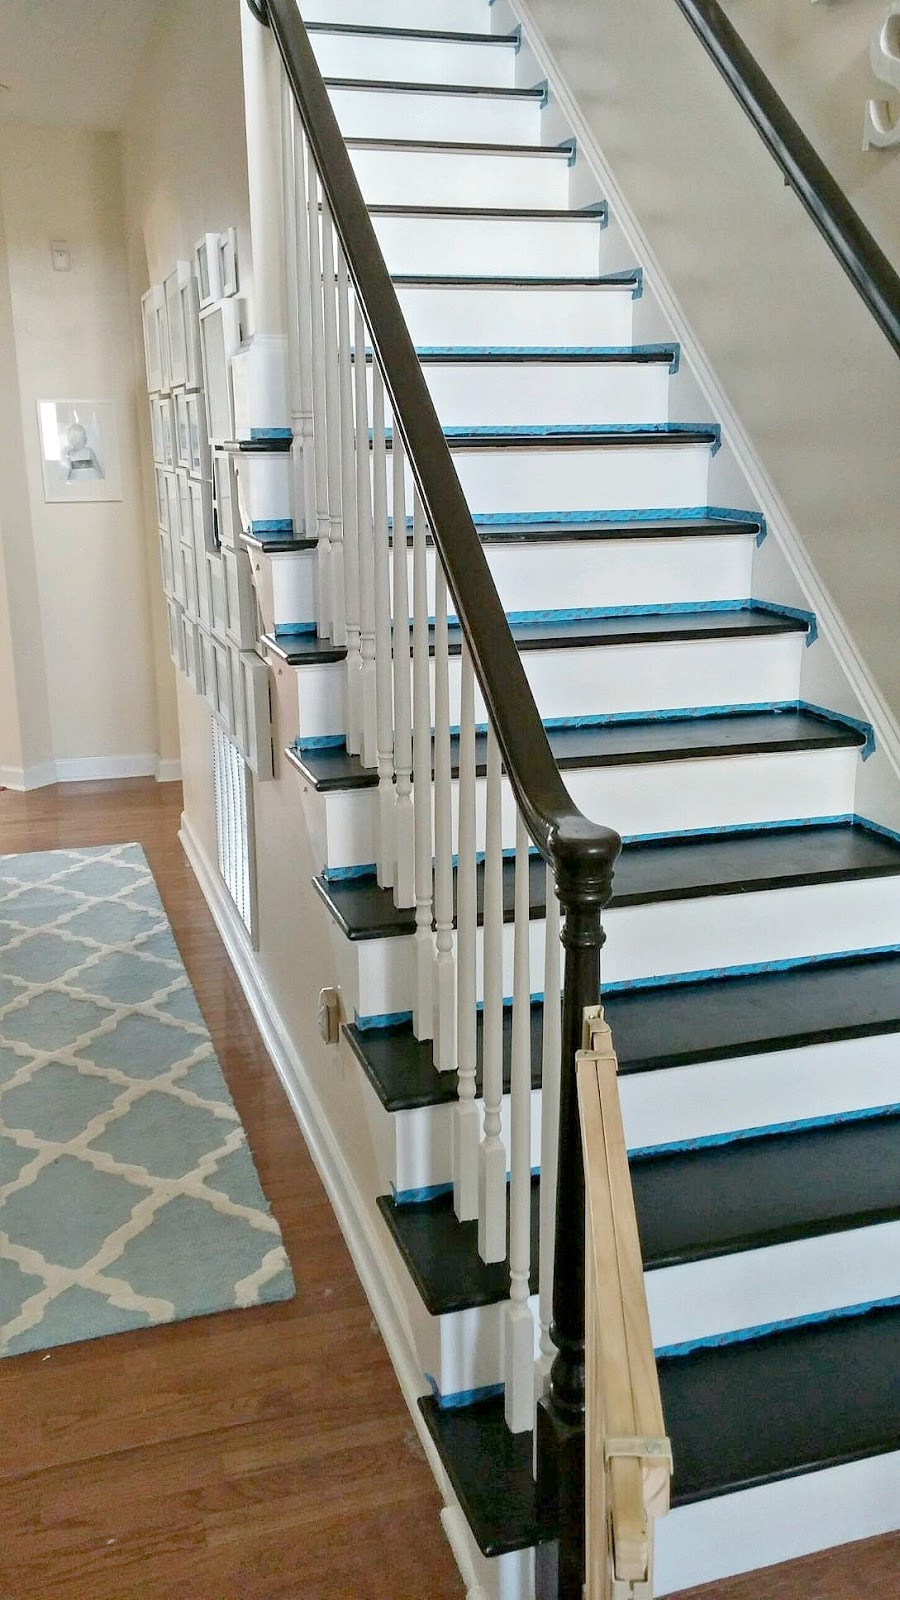 Today Tal Applied Two Coats Of Water Based Poly To The Stair Treads. (We  Selected A Satin Finish, So The Poly Will Be Less Likely To Trap Dust And  Cause ...